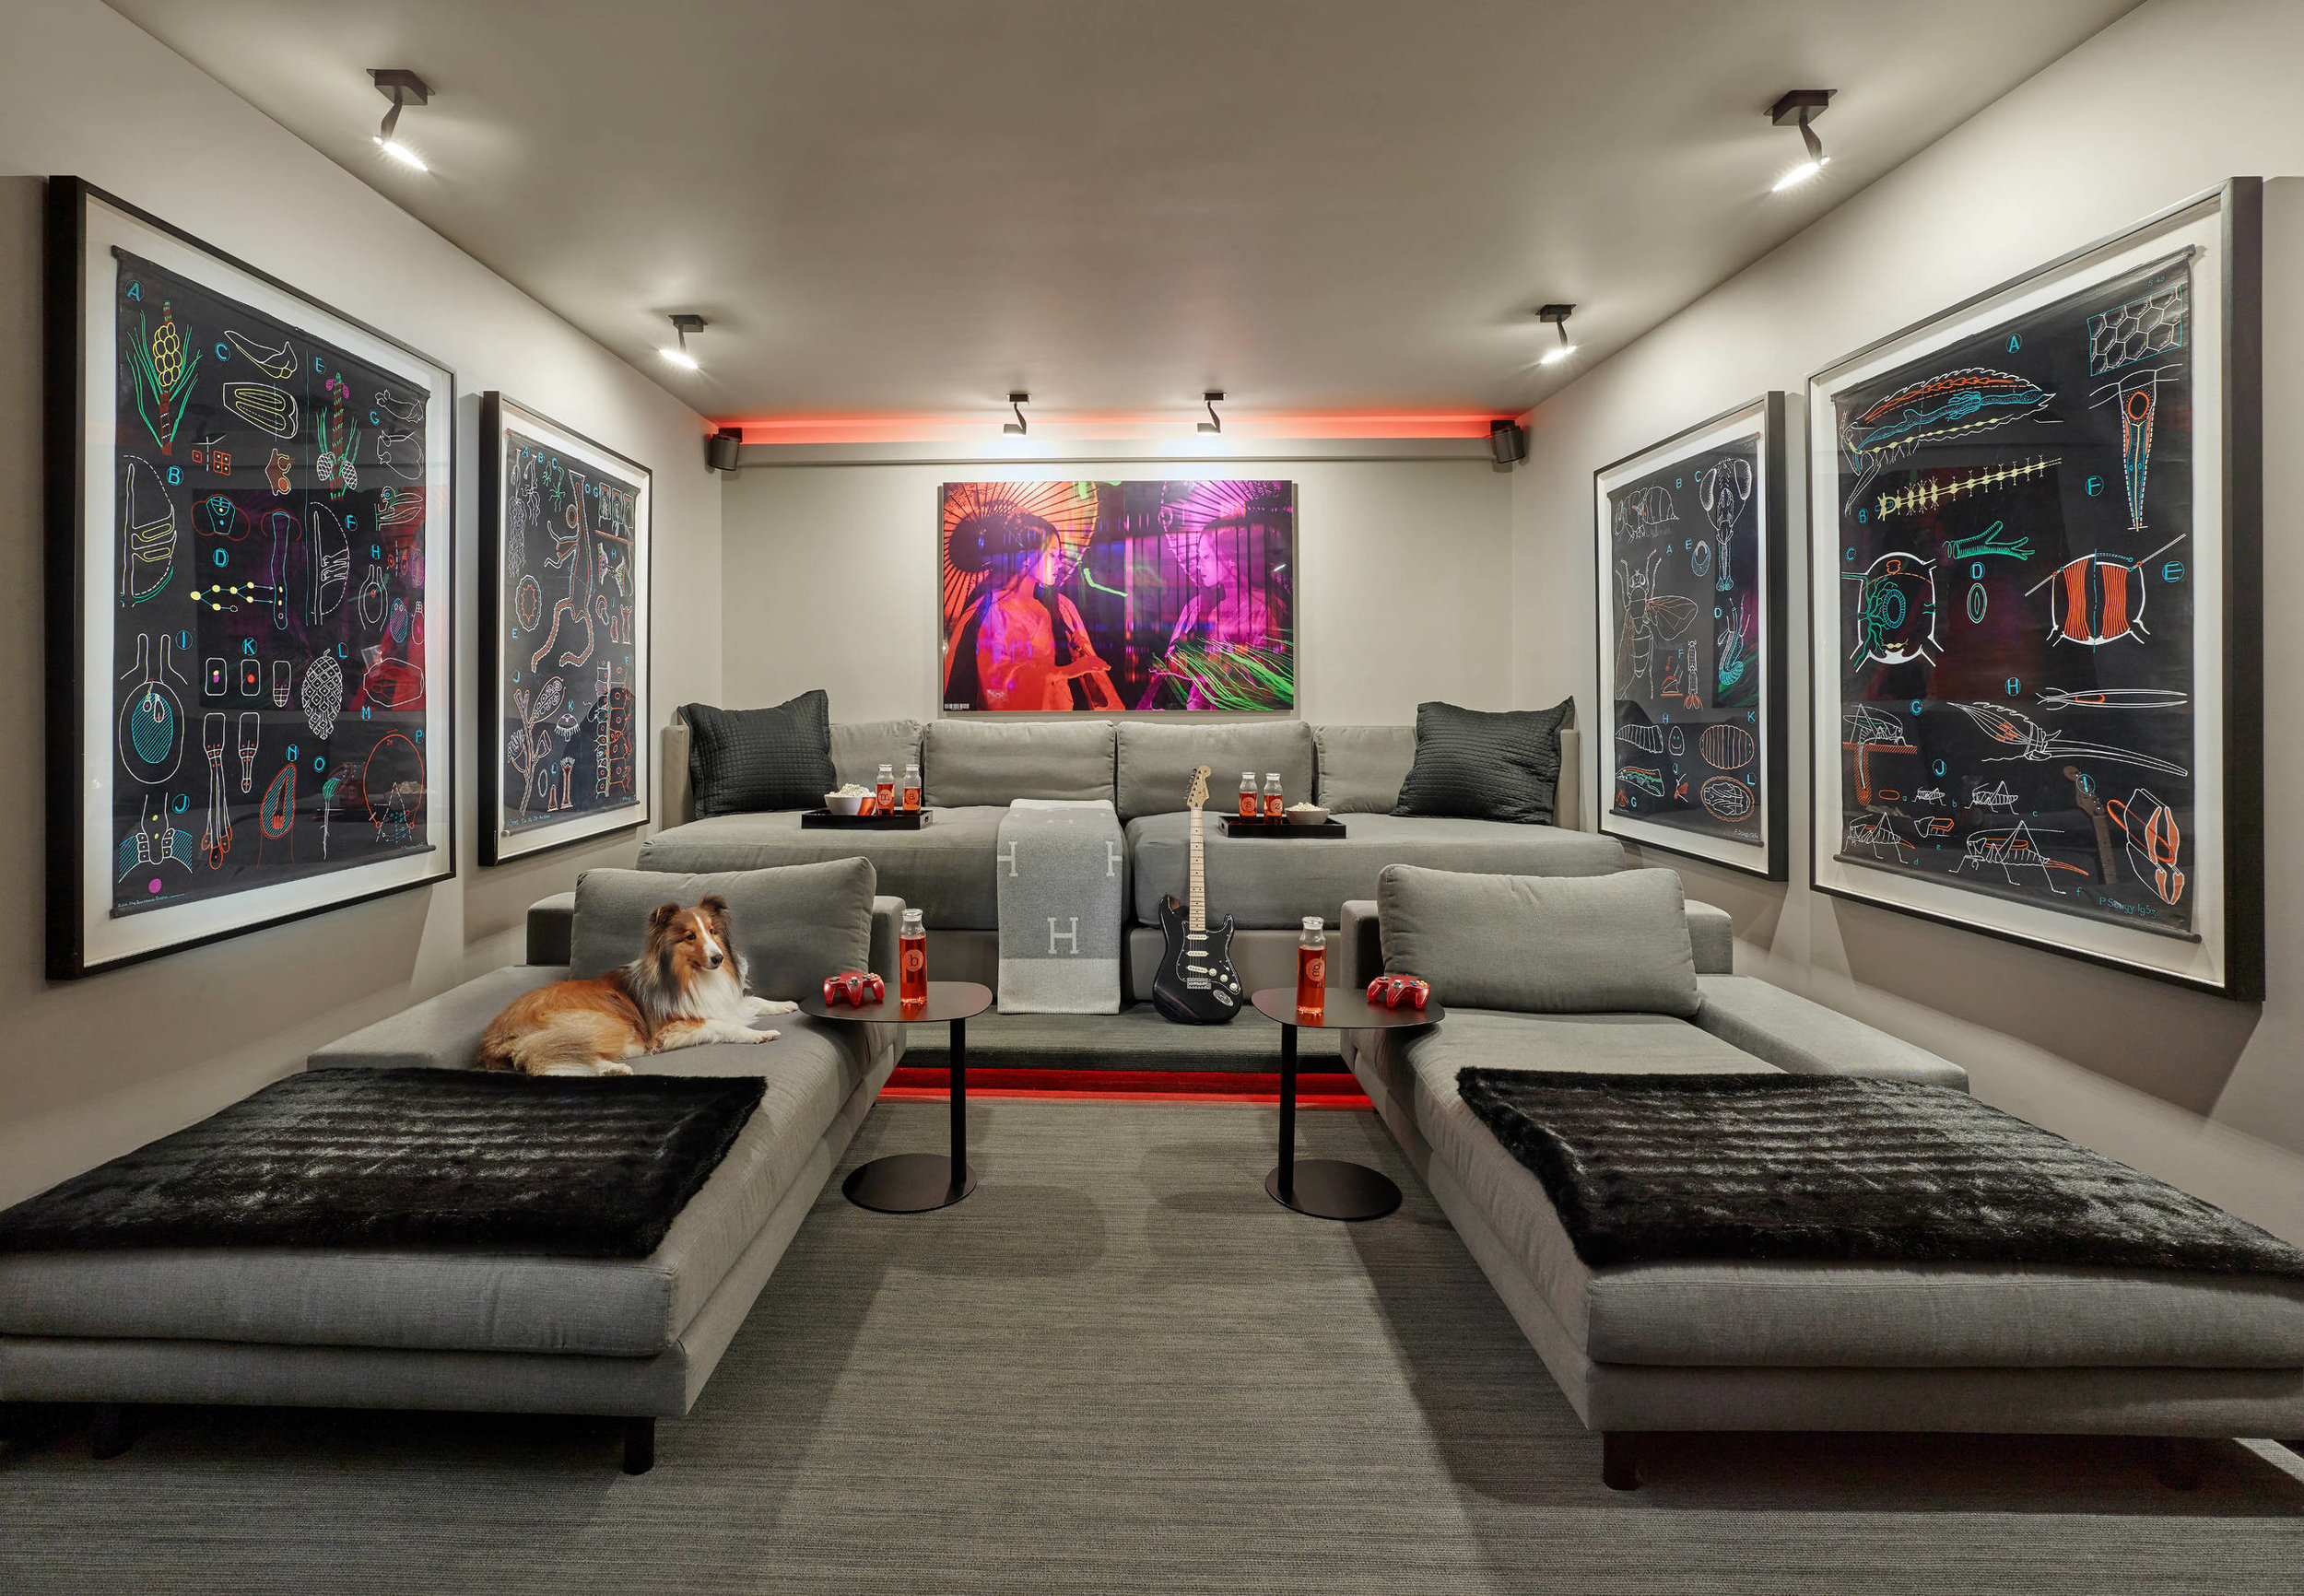 Home Theater Room Before After A Typical Garage Becomes A Vibrant Home Theater